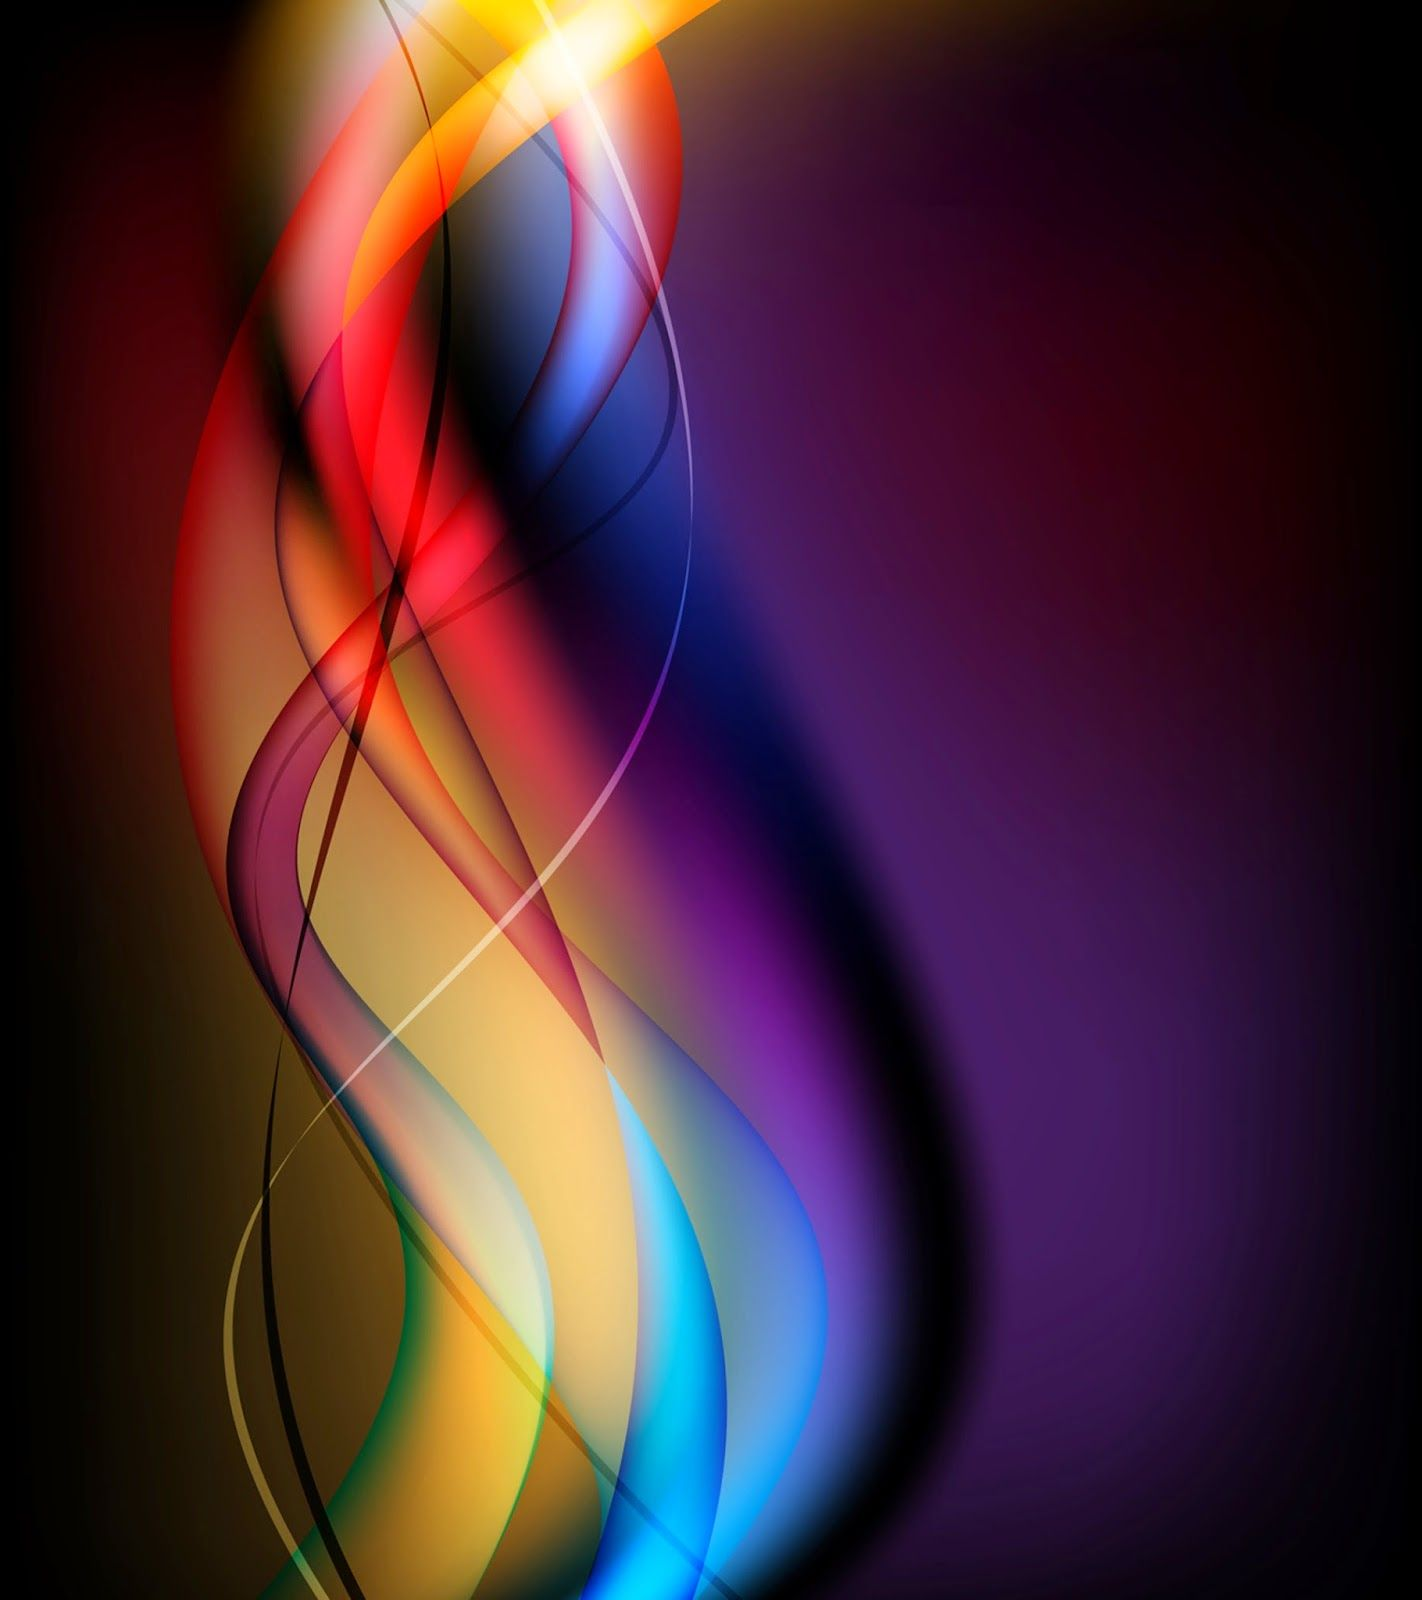 HD Wallpapers: Abstract Wallpaper (With Images)